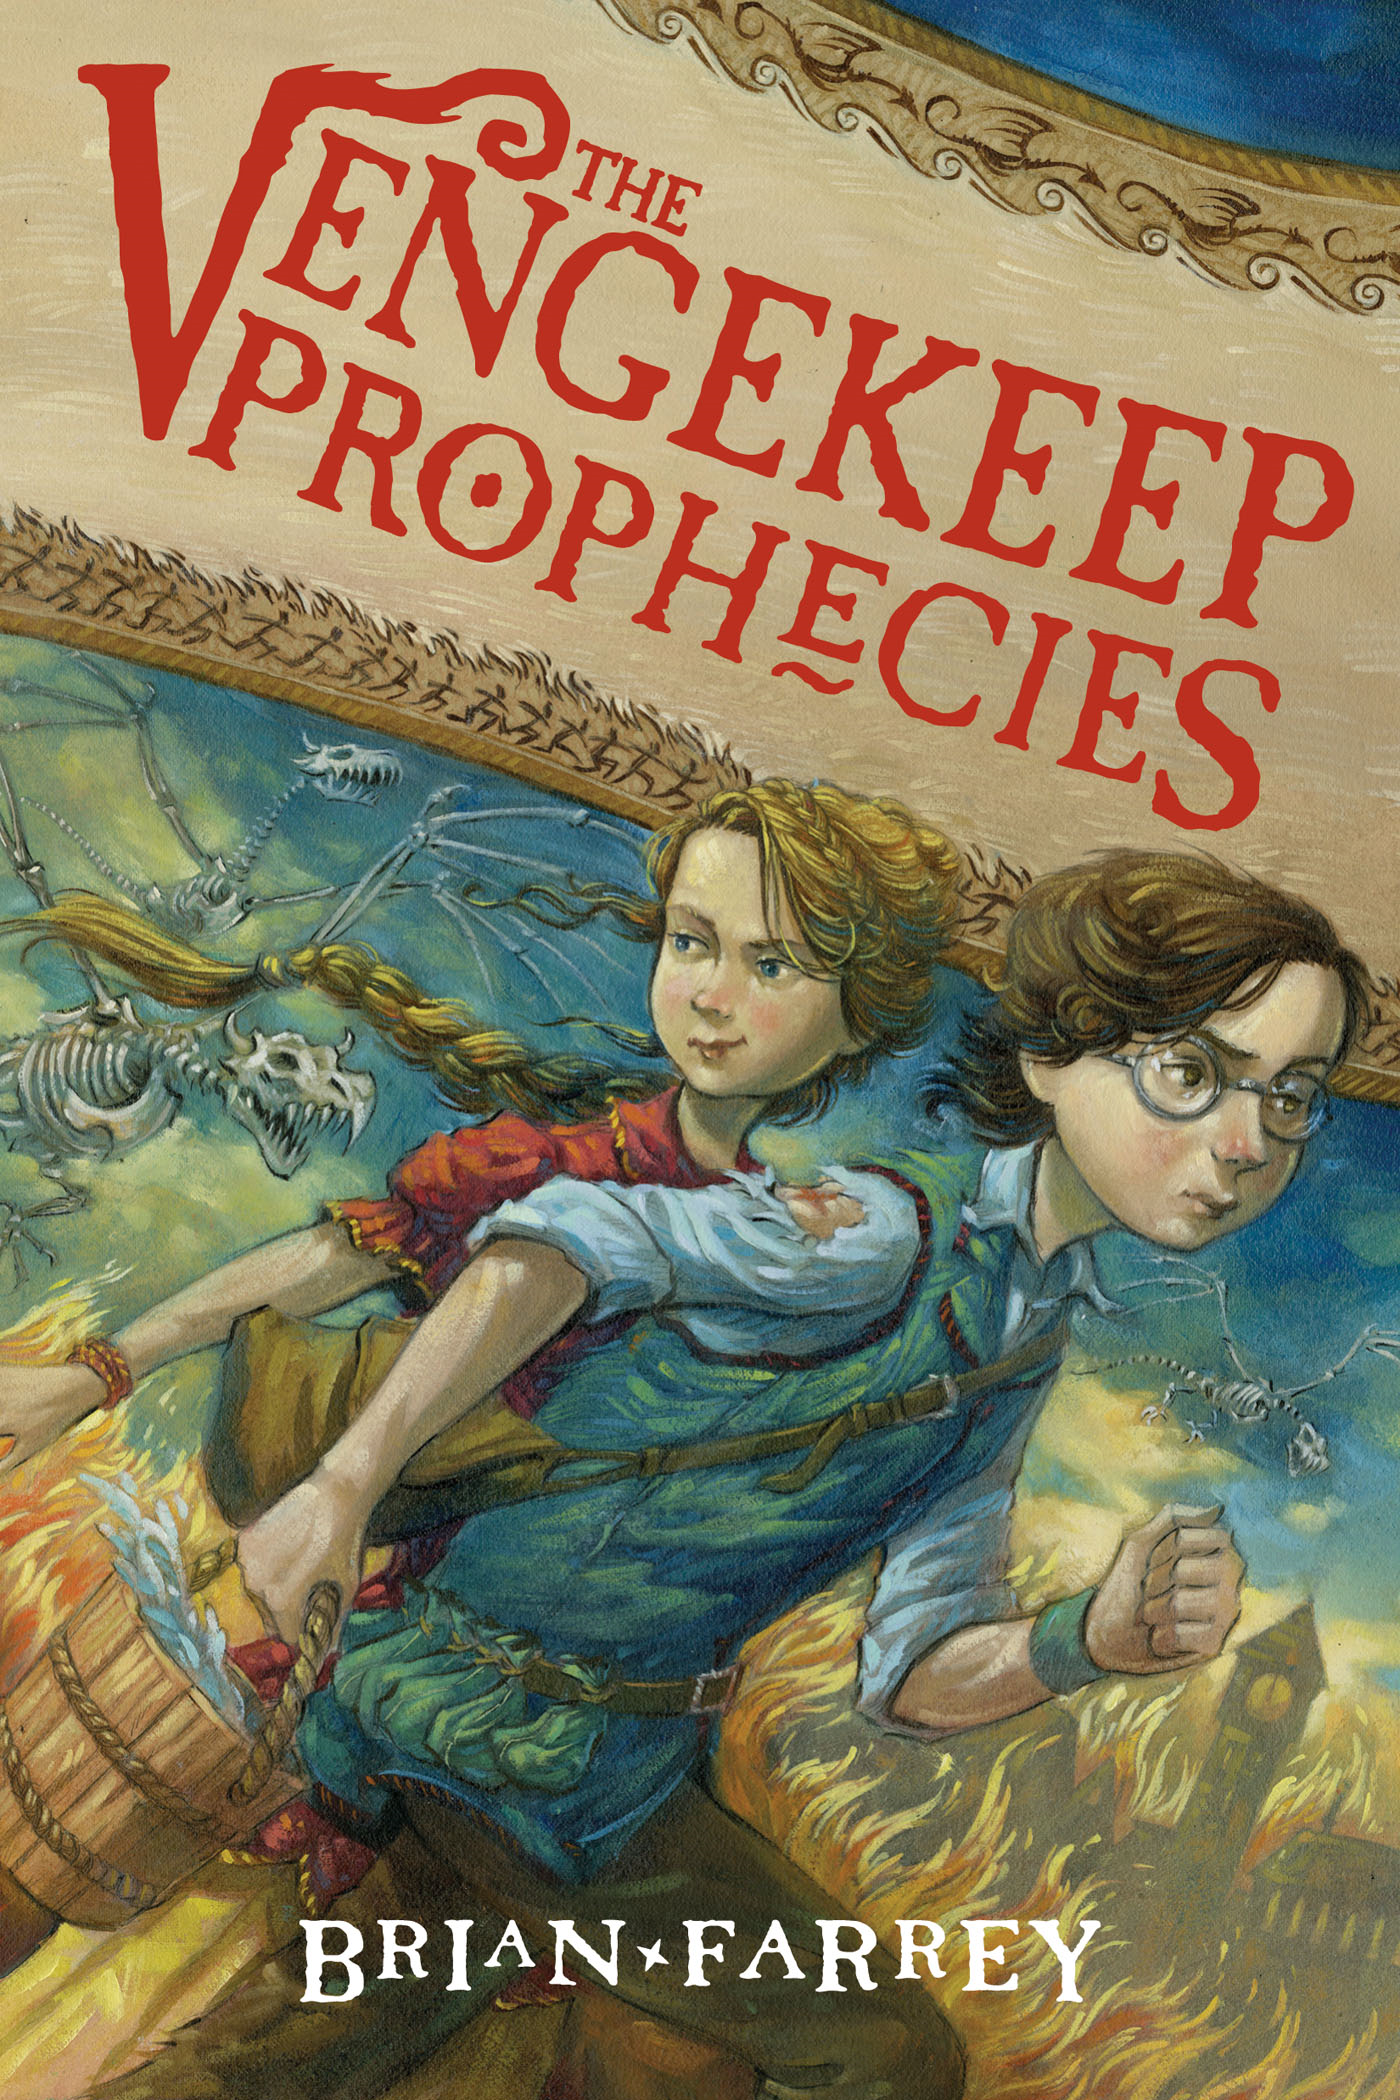 The Vengekeep Prophecies By: Brian Farrey,Brett Helquist